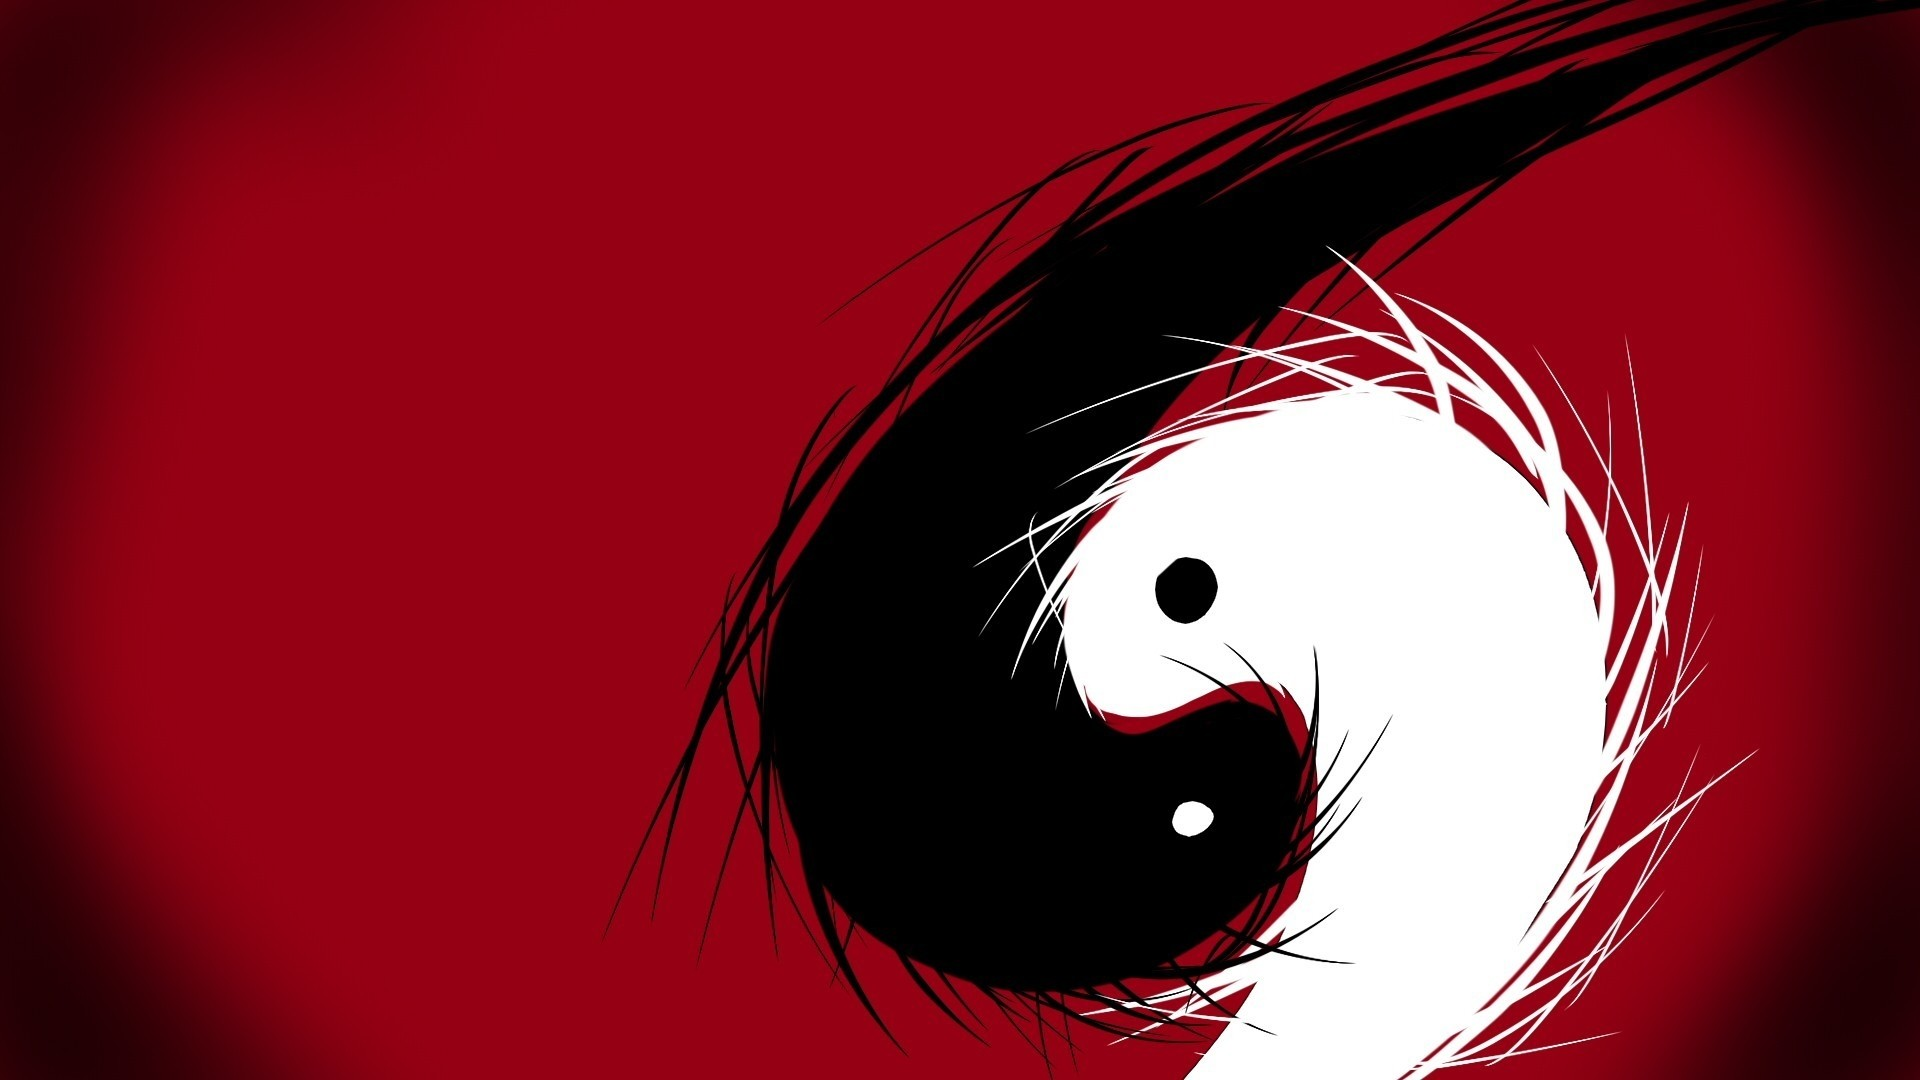 Yin Yang Wallpaper Picture hd